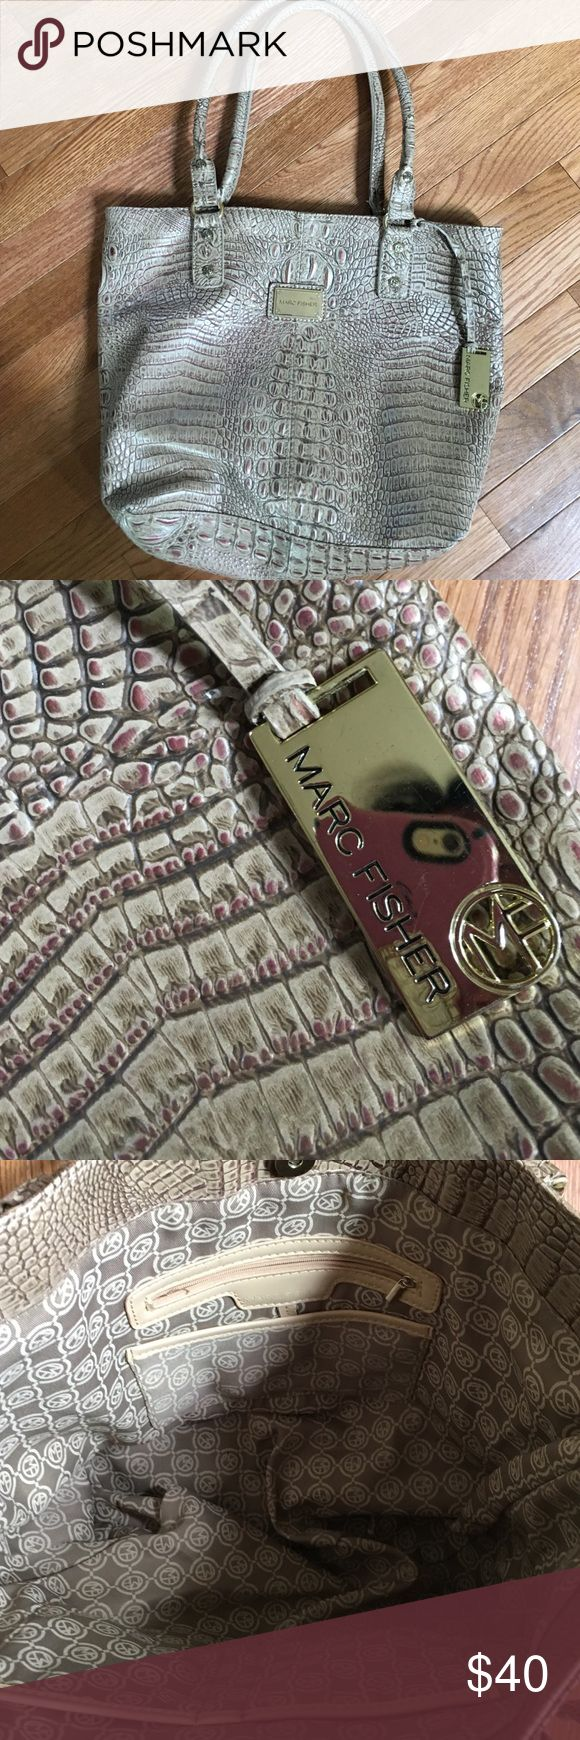 Marc Fisher Handbad Like new Marc Fisher Handbag.  Carried twice.Excellent condition, great neutral color This bag has a great sheen to it with hints of gold. Marc Fisher Bags Shoulder Bags